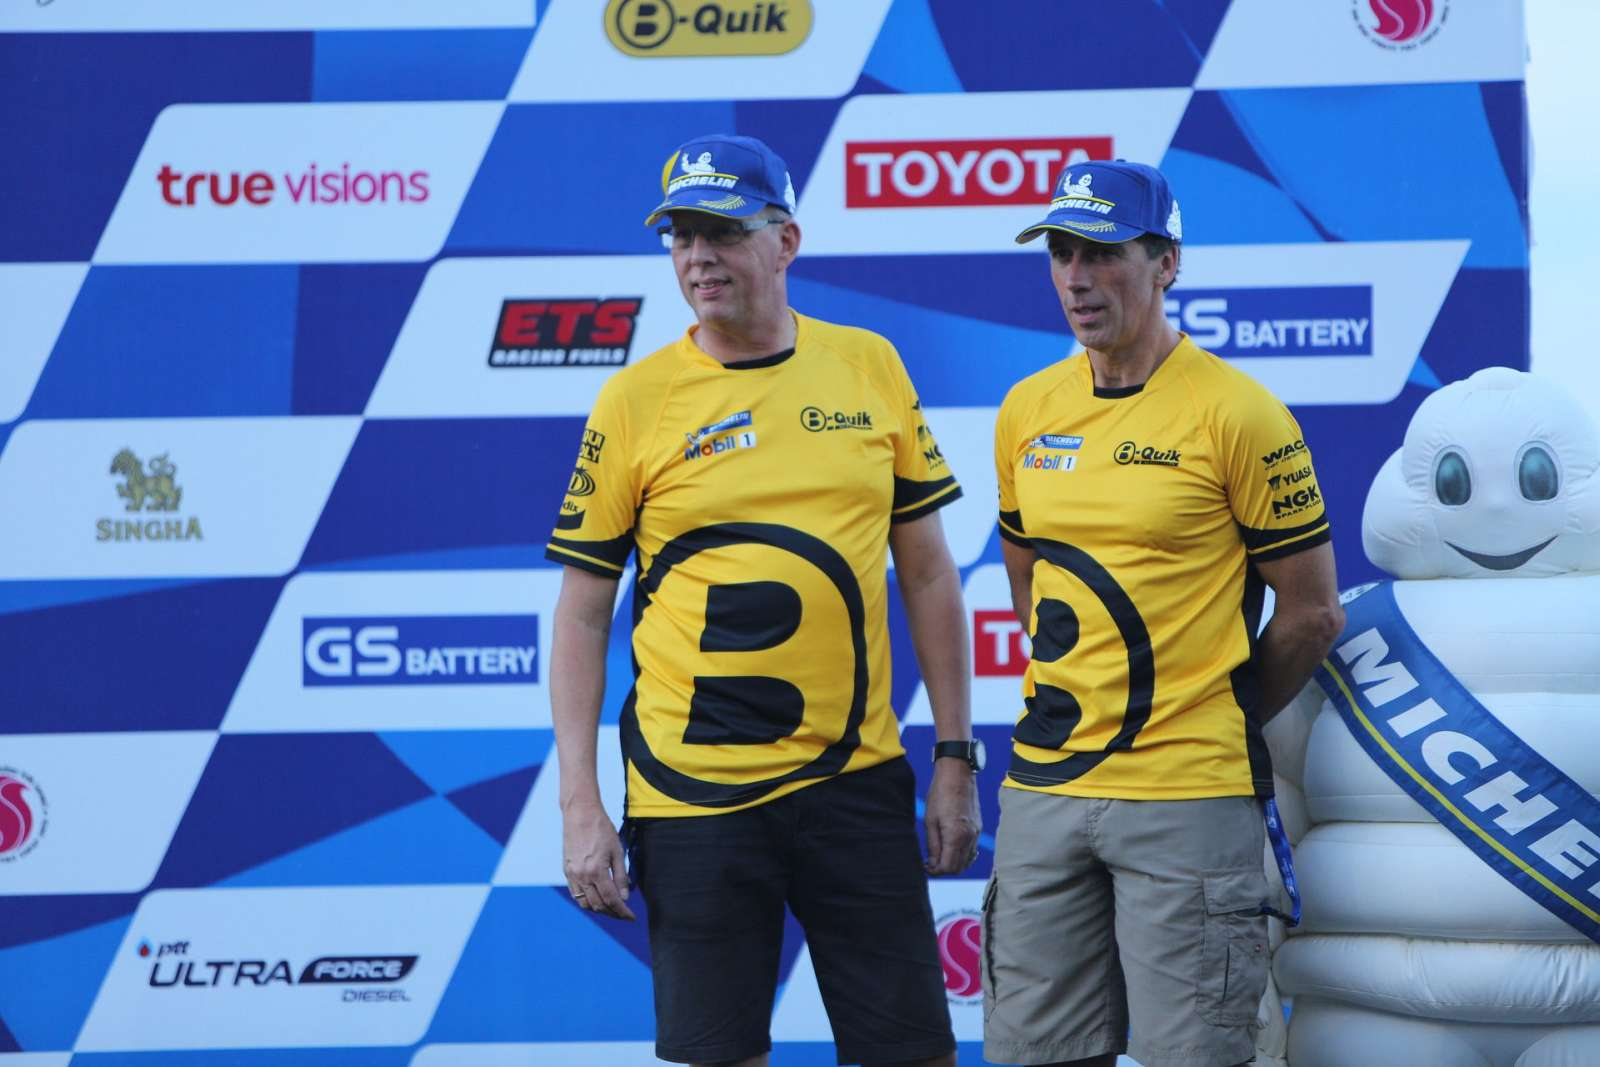 peter-kox-championship-winning-weekend-for-B-QUIK-in-buriram-09